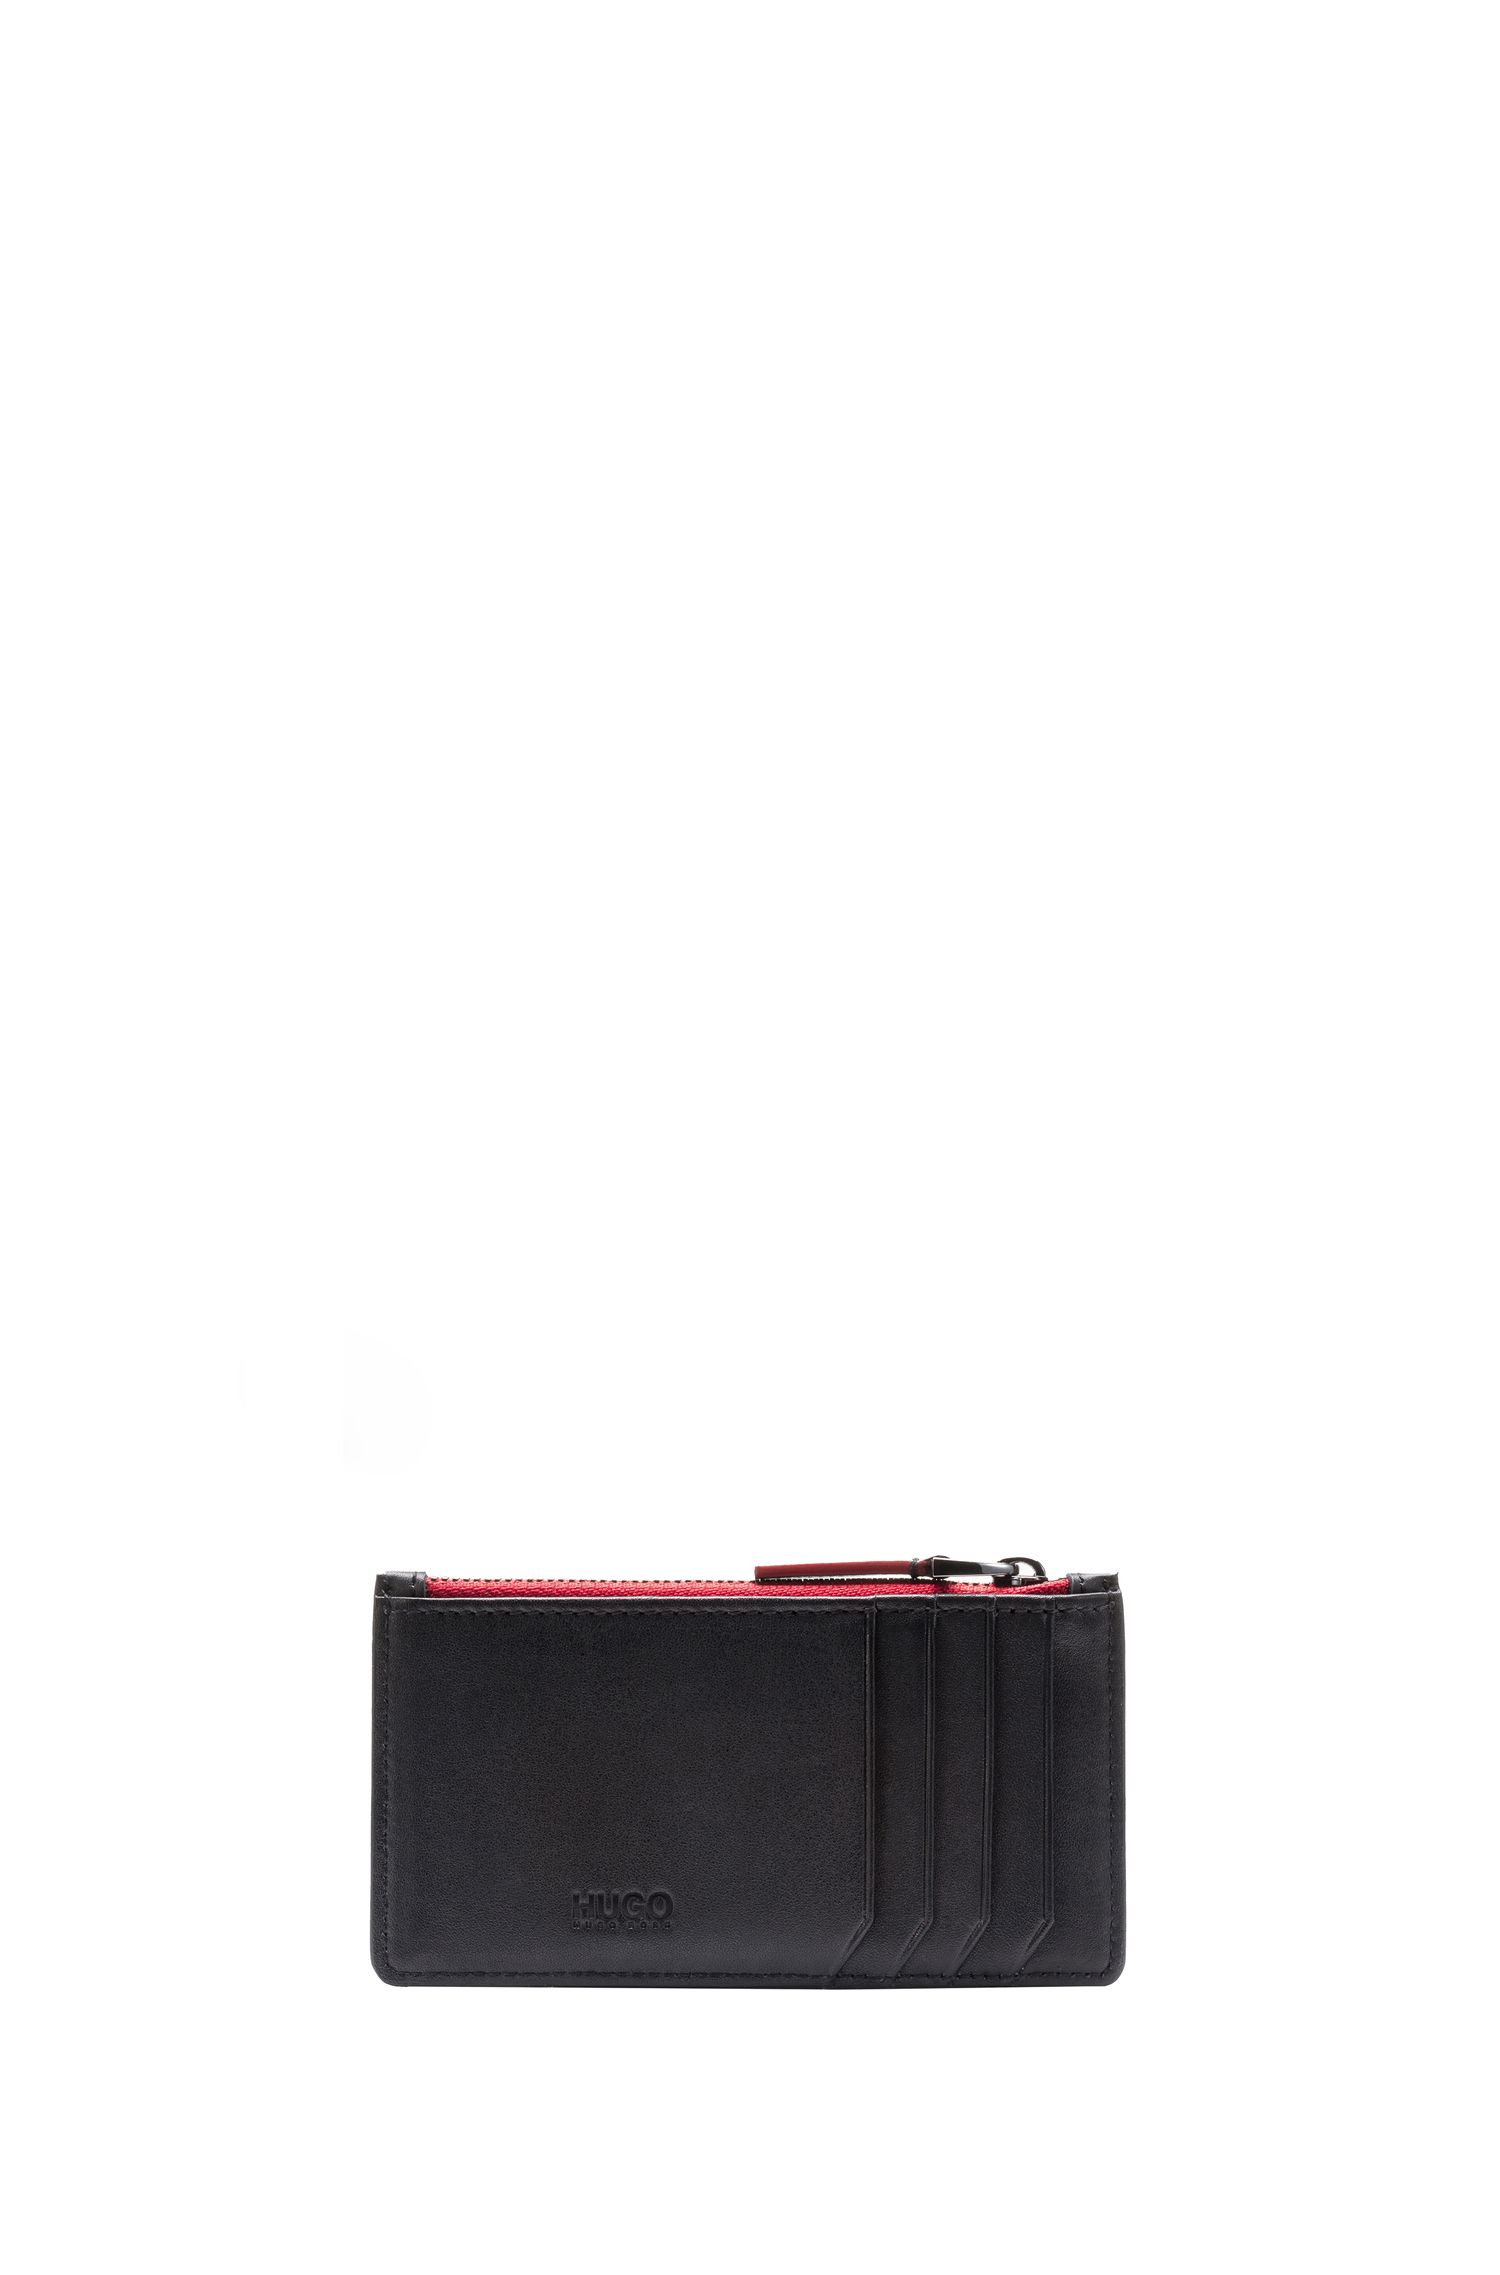 Nappa leather card holder with coin pocket, Black